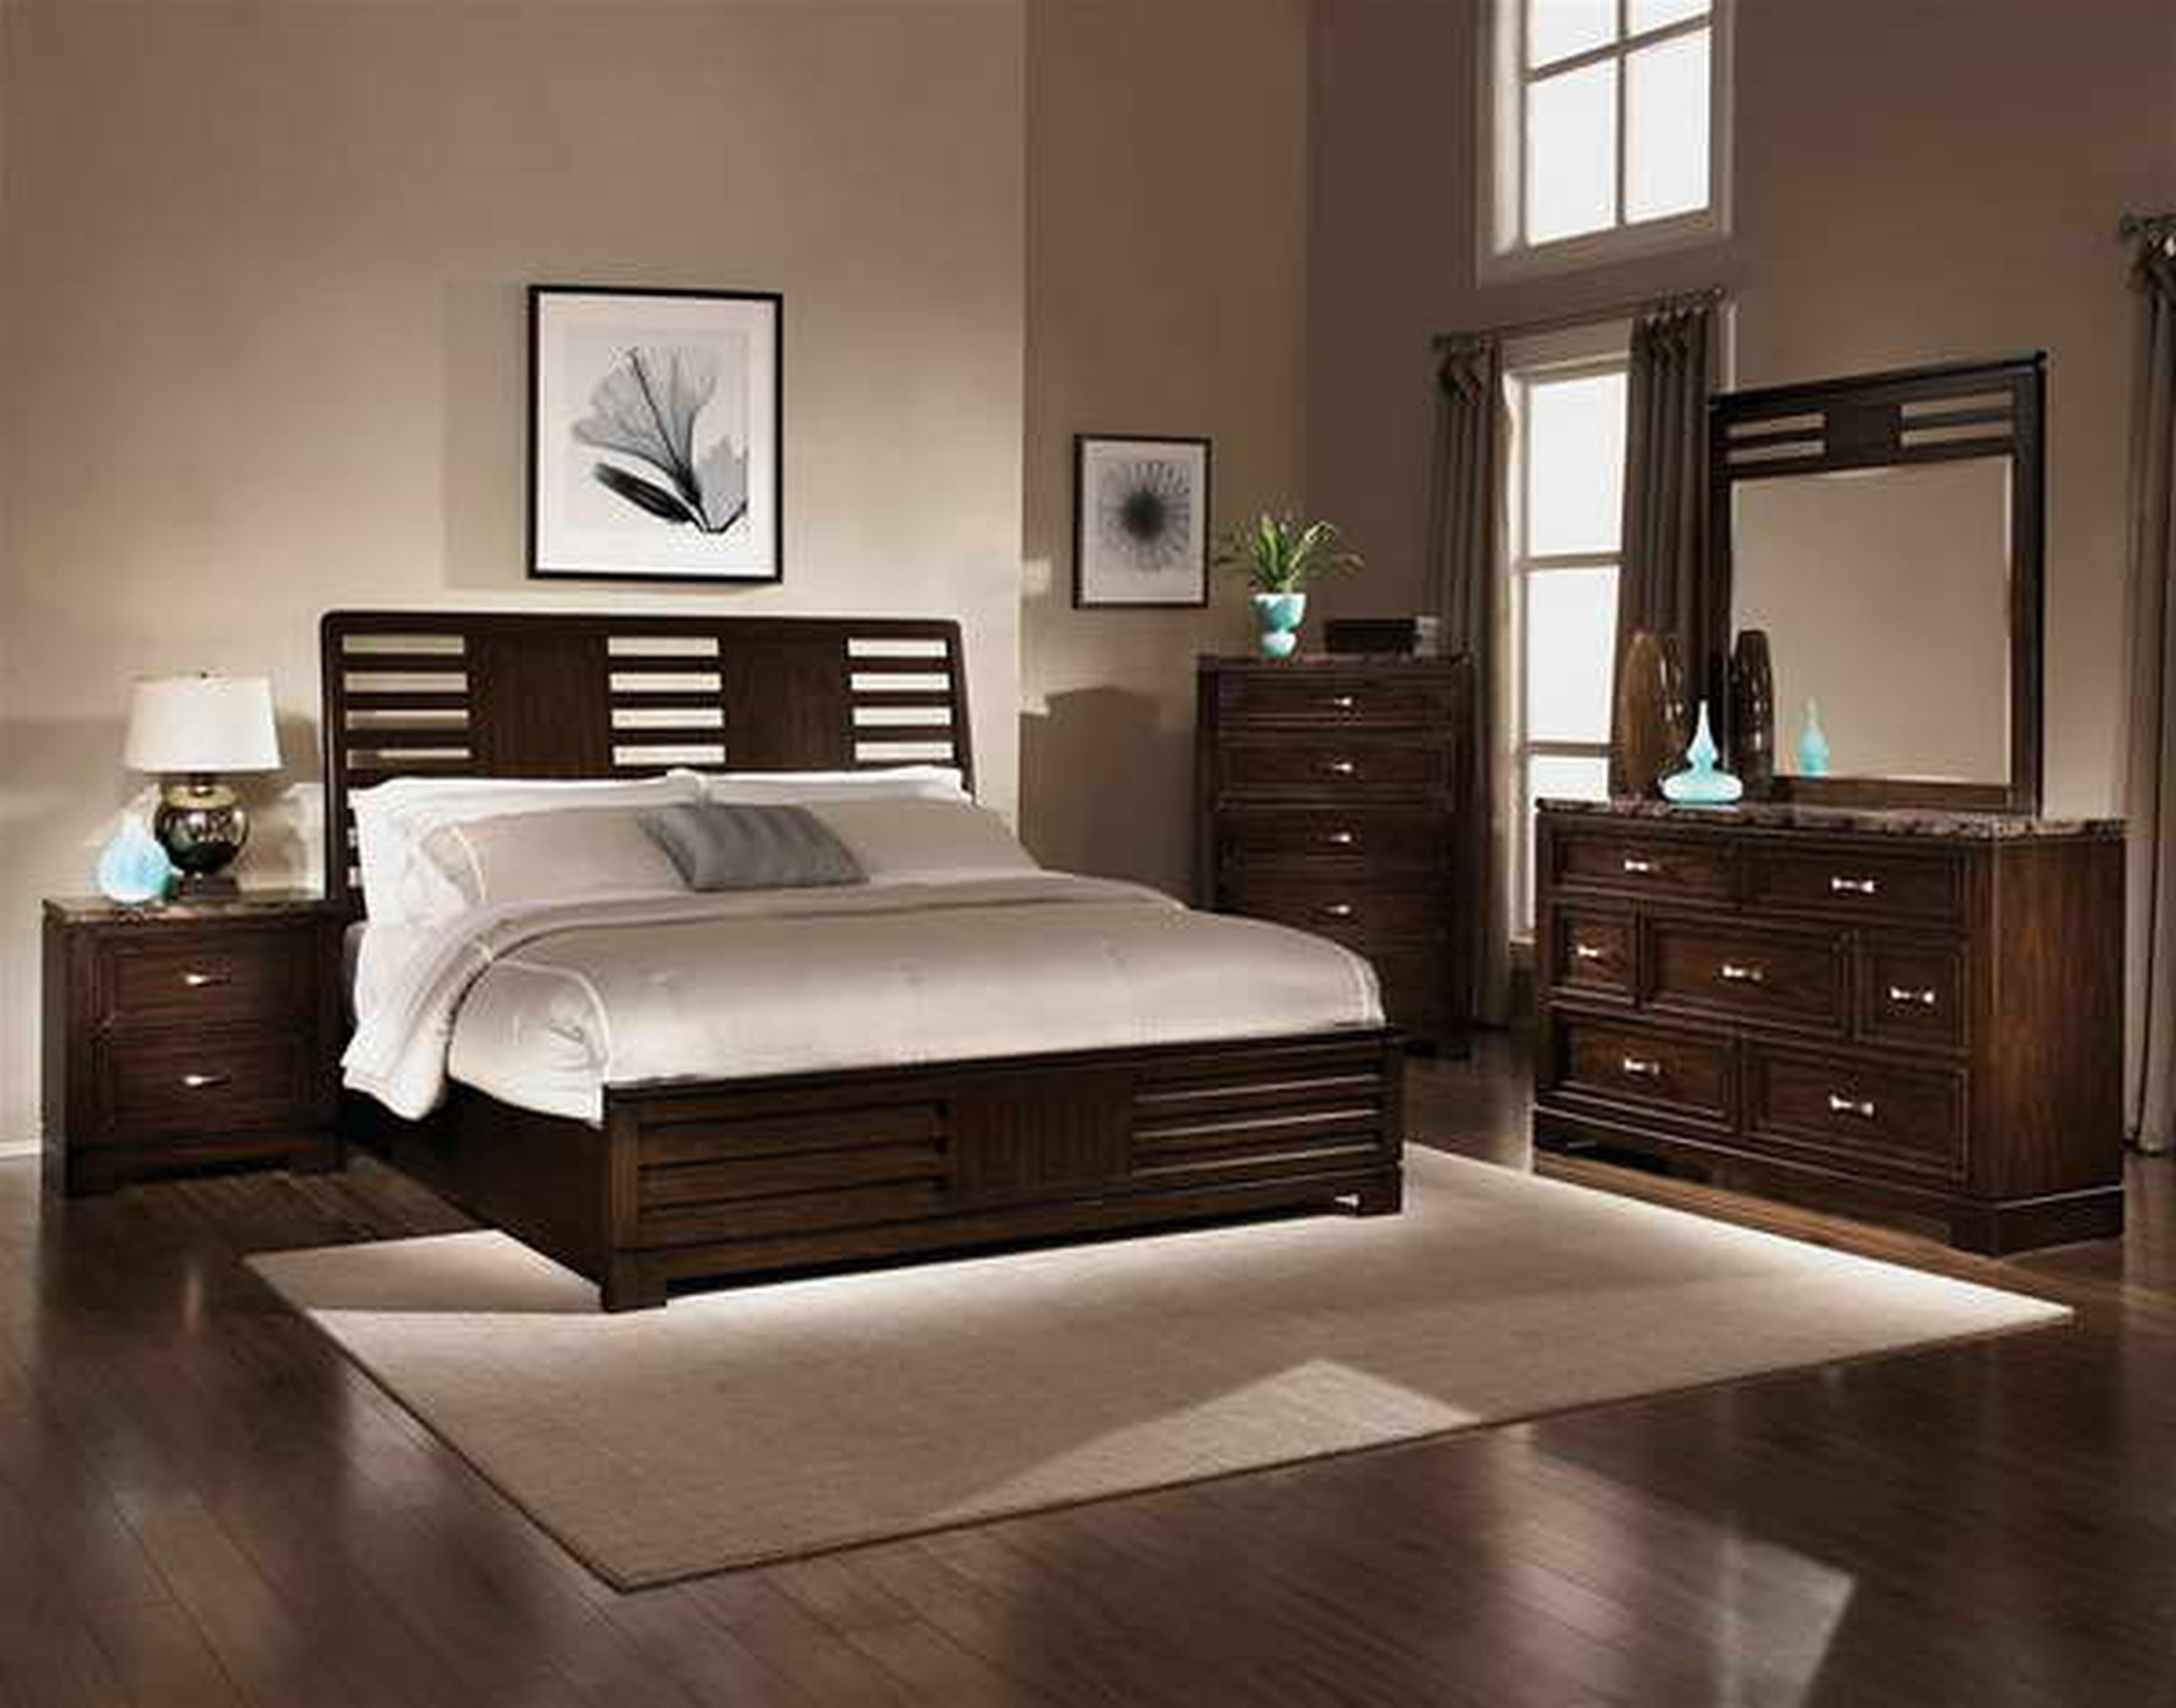 Master Bedroom Paint Colors 2020 With Dark Furniture #2020 ...